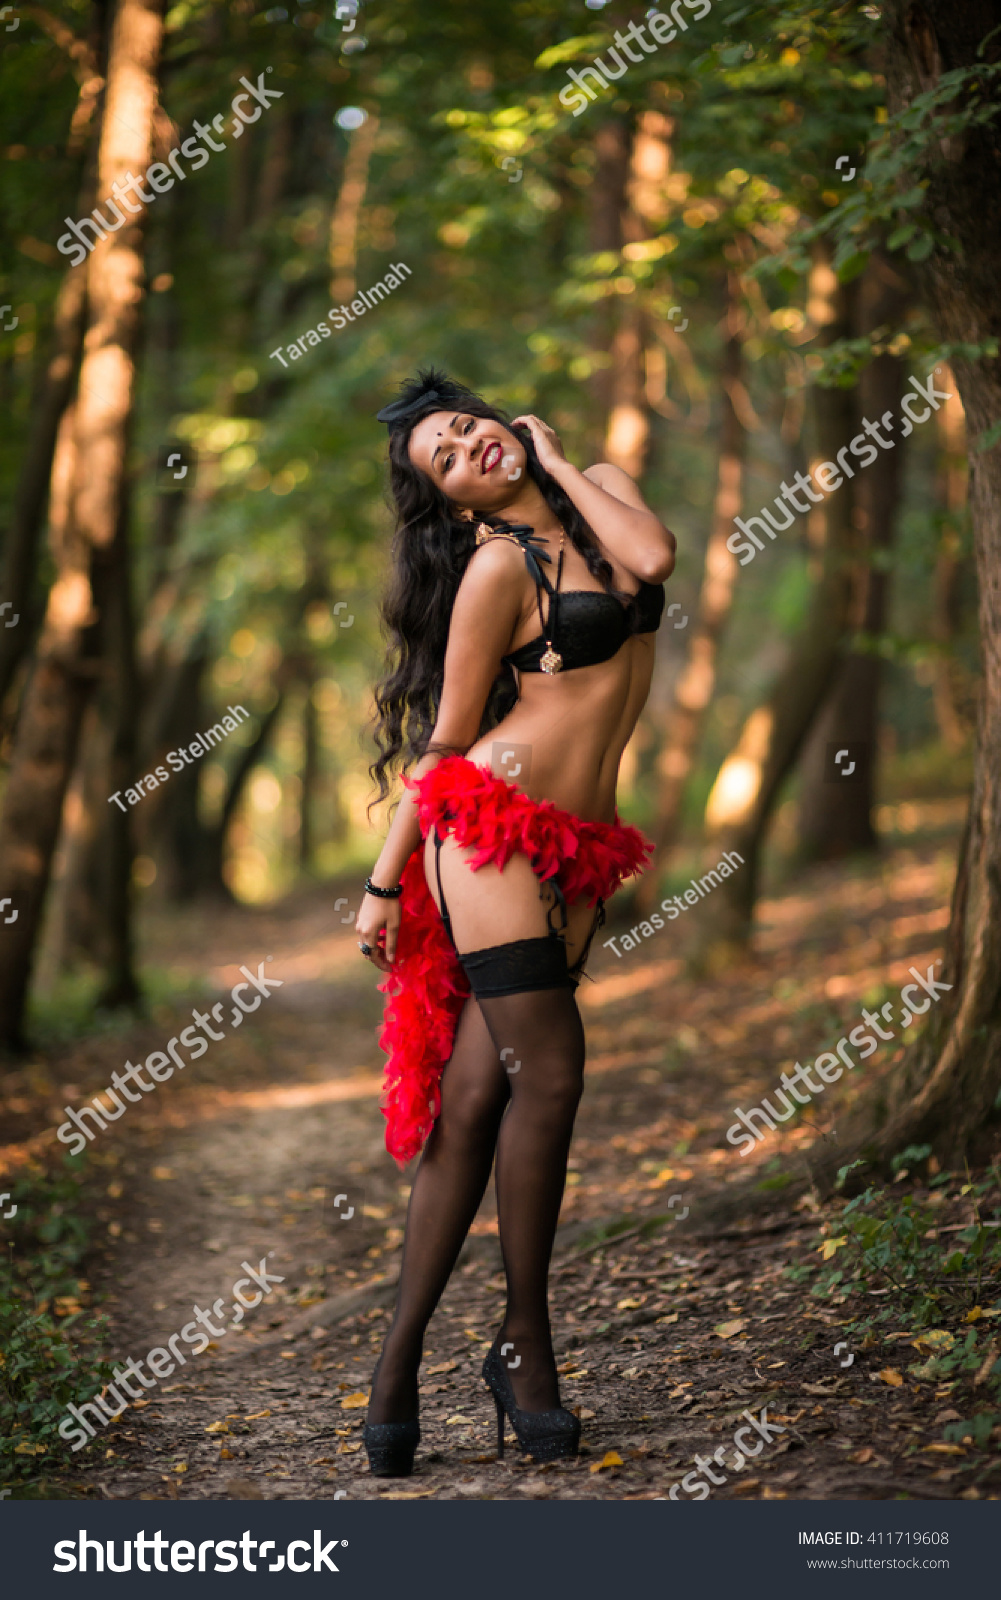 Sexy girls in the woods